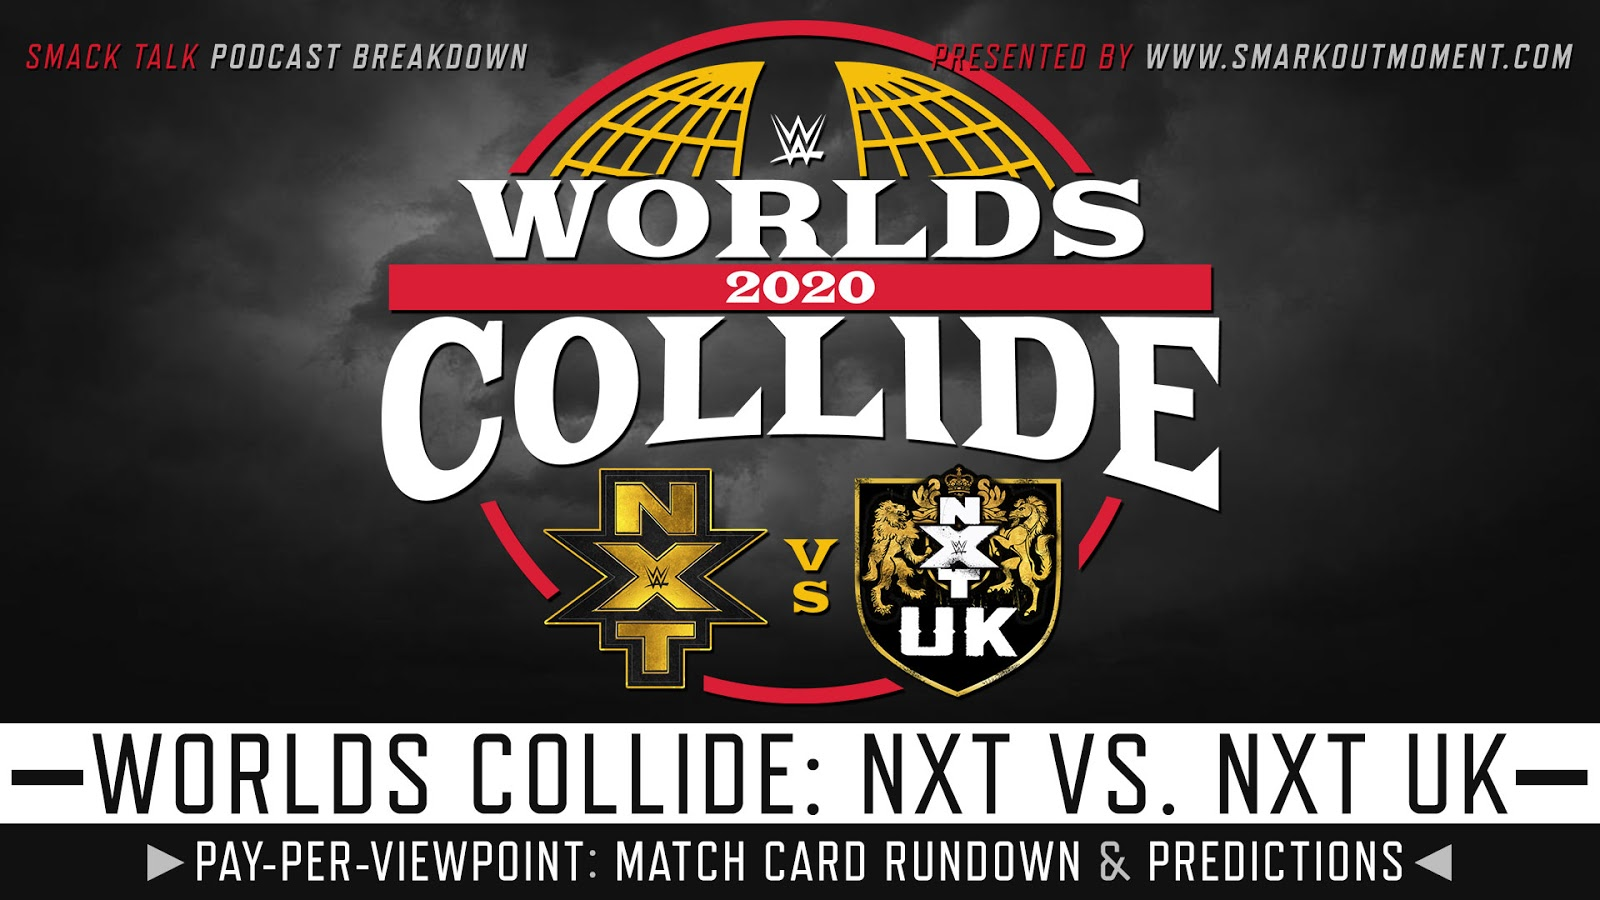 WWE Worlds Collide: NXT vs. NXT UK spoilers podcast